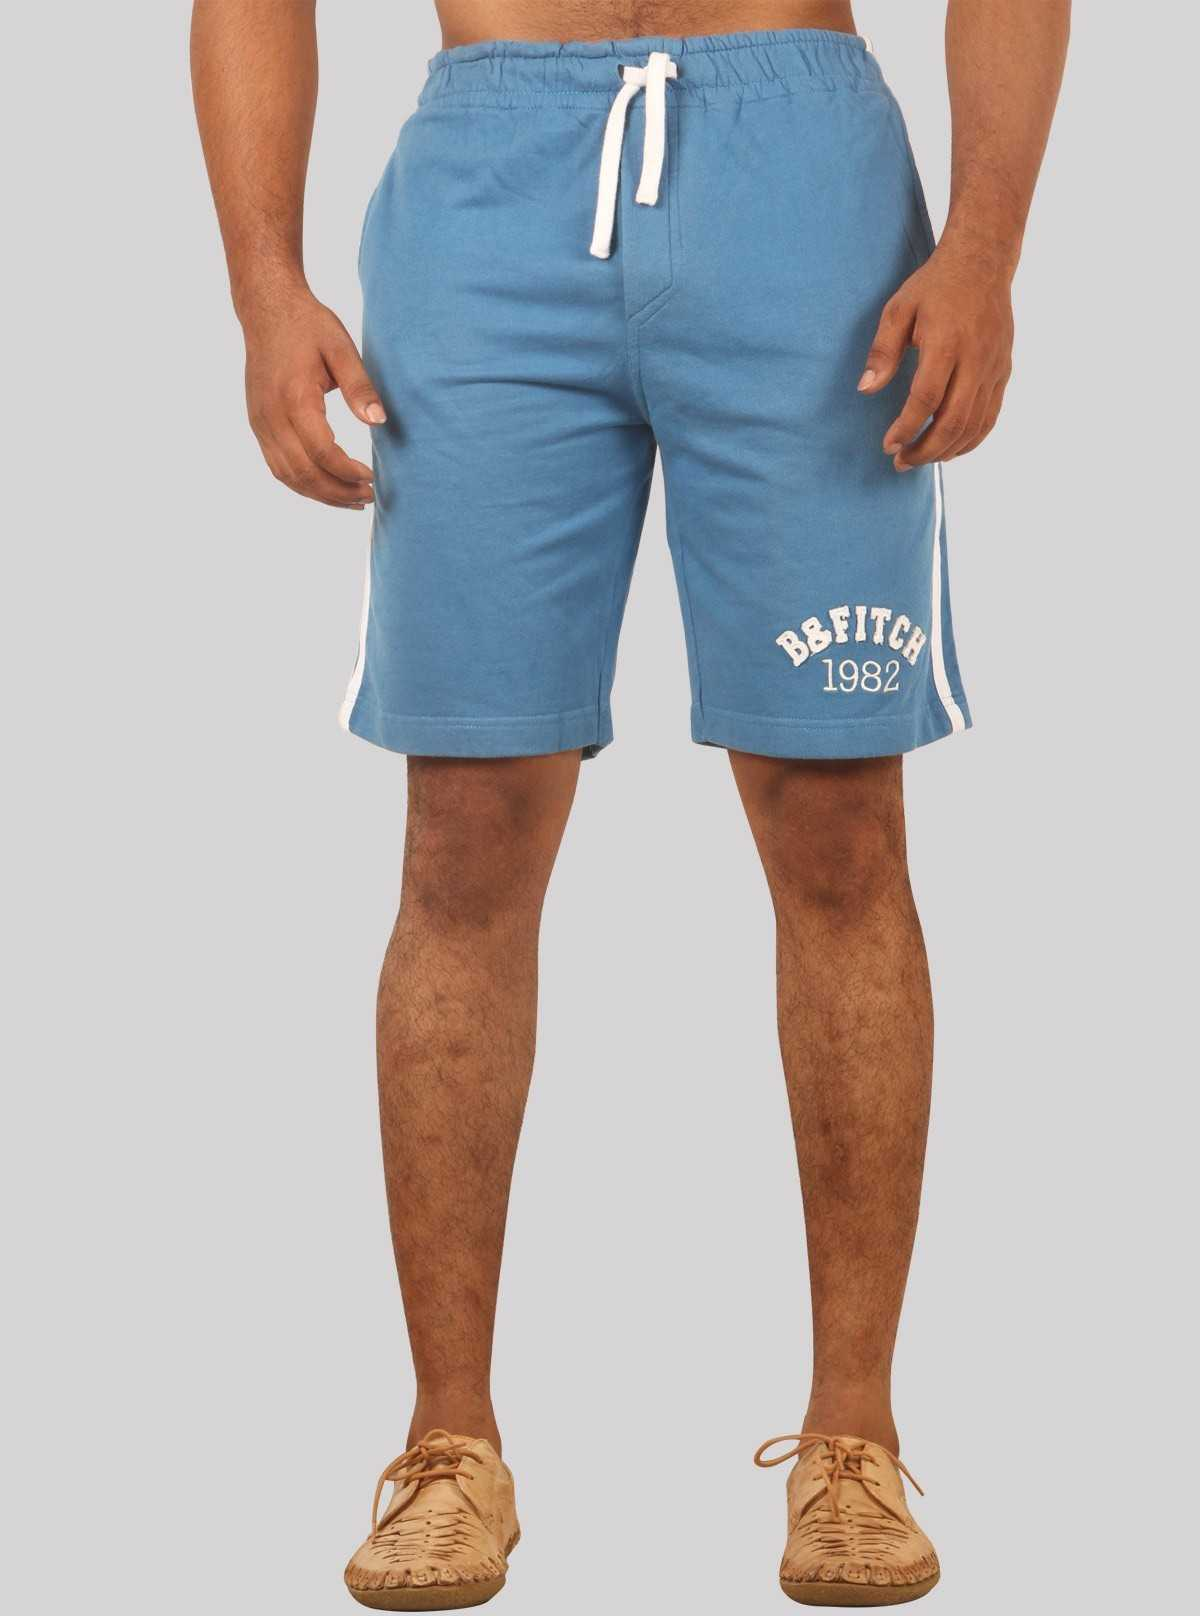 Royal Piping Fleece Shorts Boer and Fitch - 1